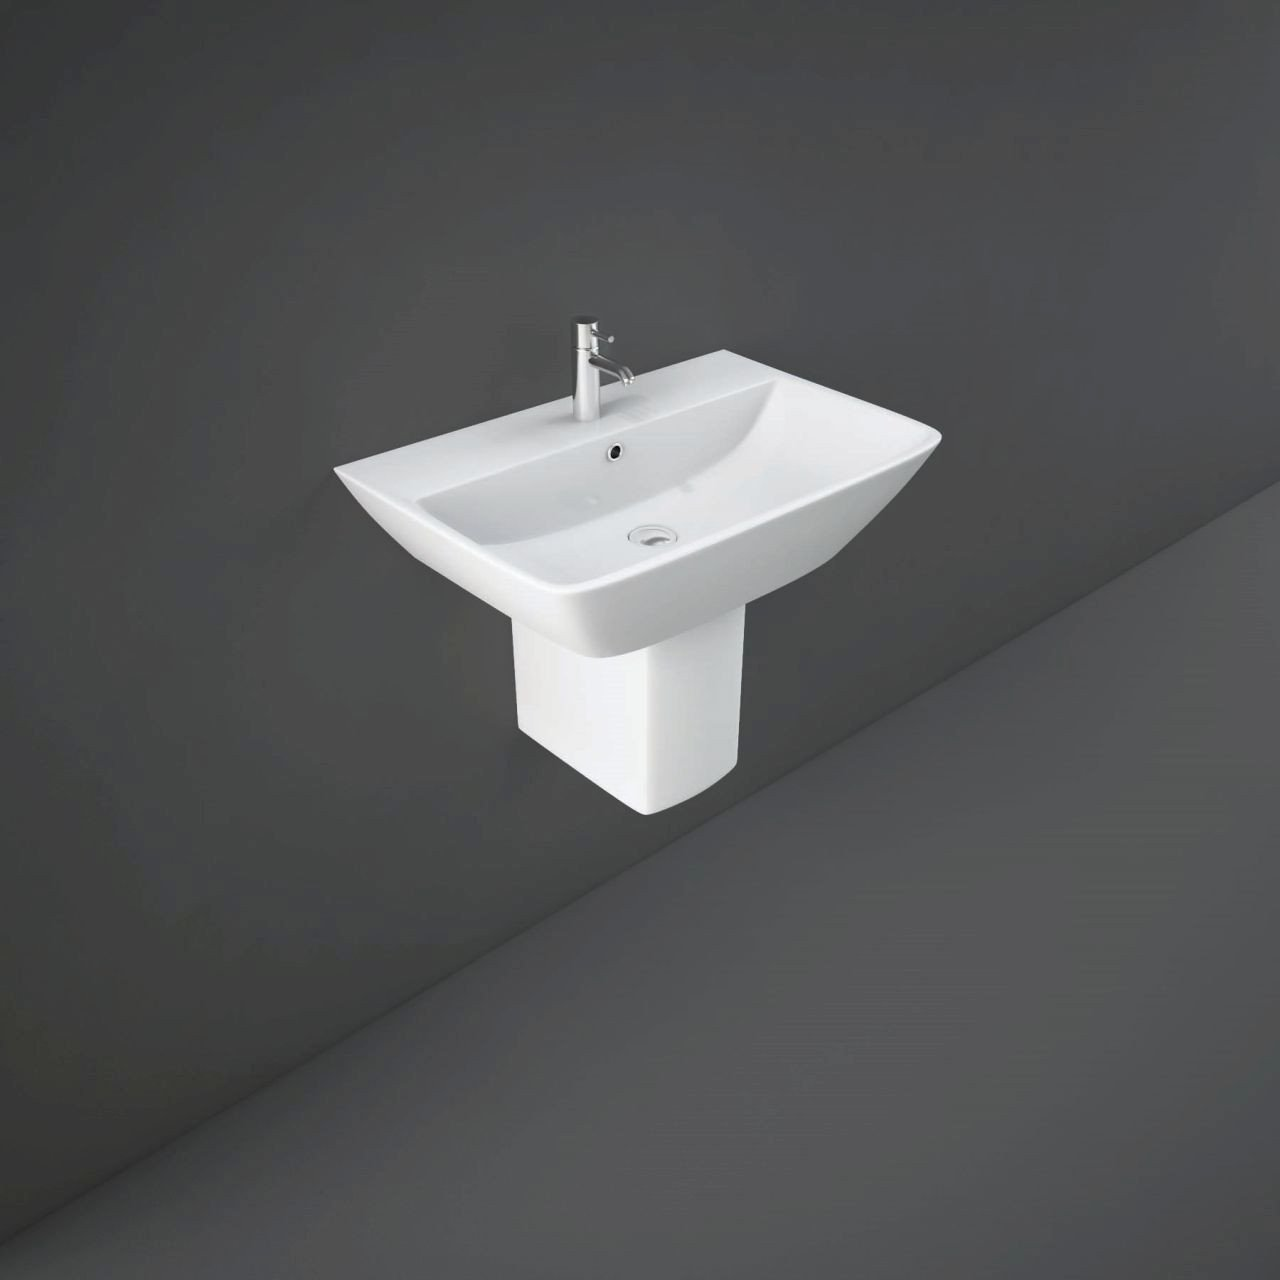 RAK Summit 400mm Wall Hung Basin with 1 Tap Hole and Semi Pedestal